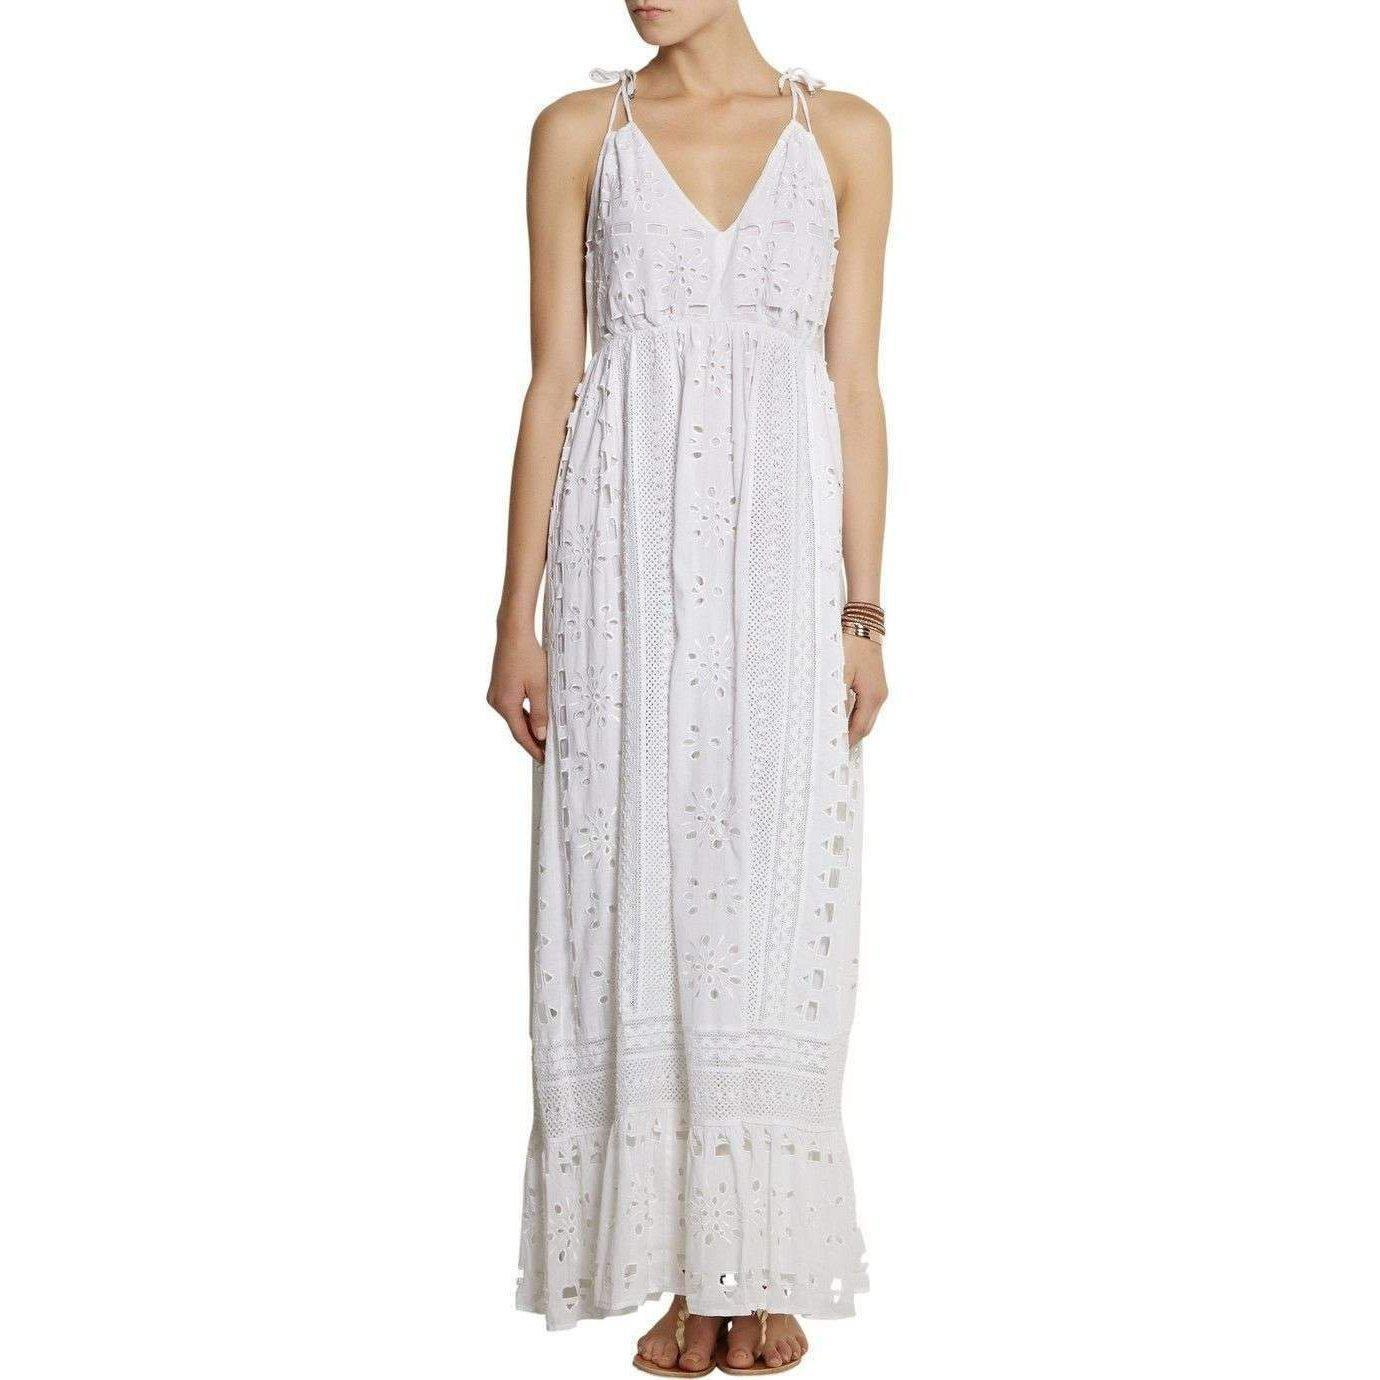 Michael Kors Michael By White Eyelet Maxi Peasant Dress in White - Lyst 2ed63b097